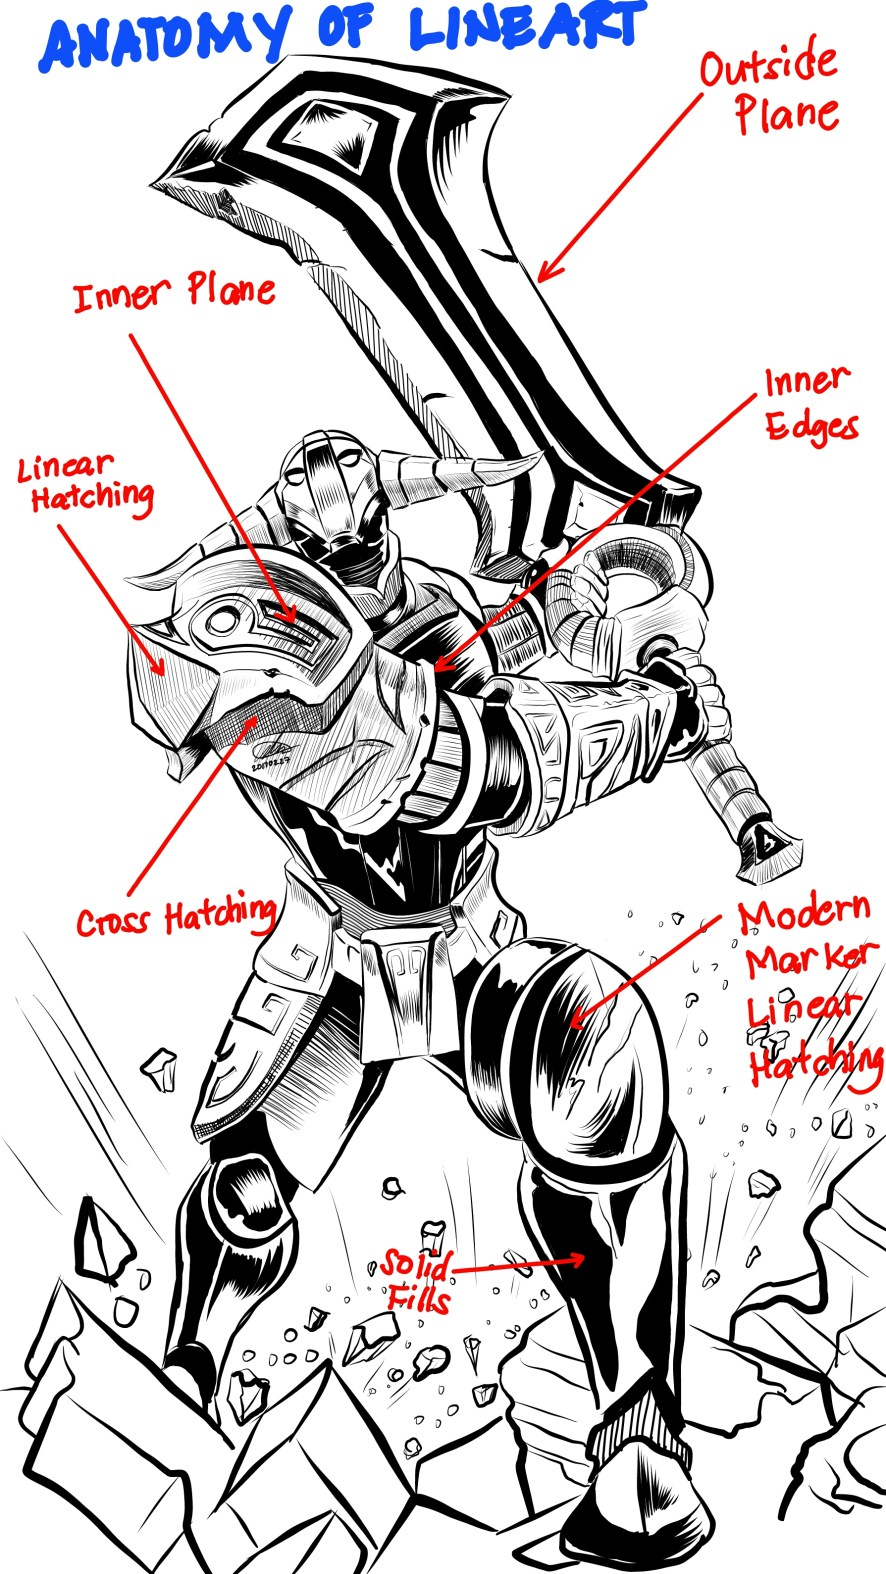 02 – Anatomy of a Line Art – The Art of Lines